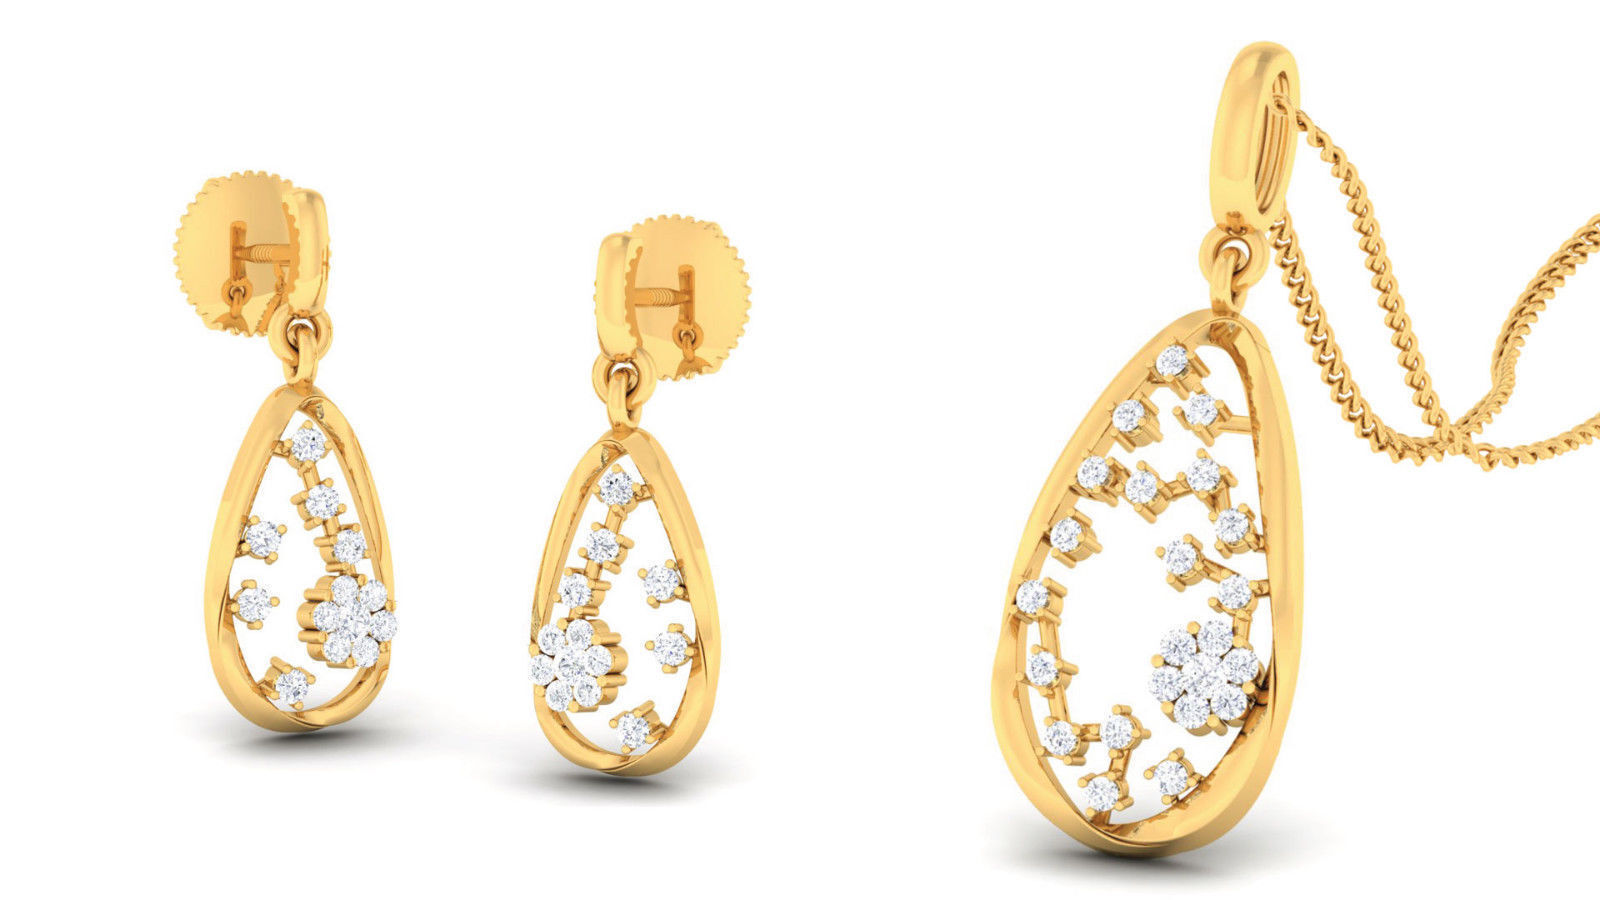 Pave 0.61 Cts Natural Diamonds Pendant Earrings Set In Solid Certified 14K gold